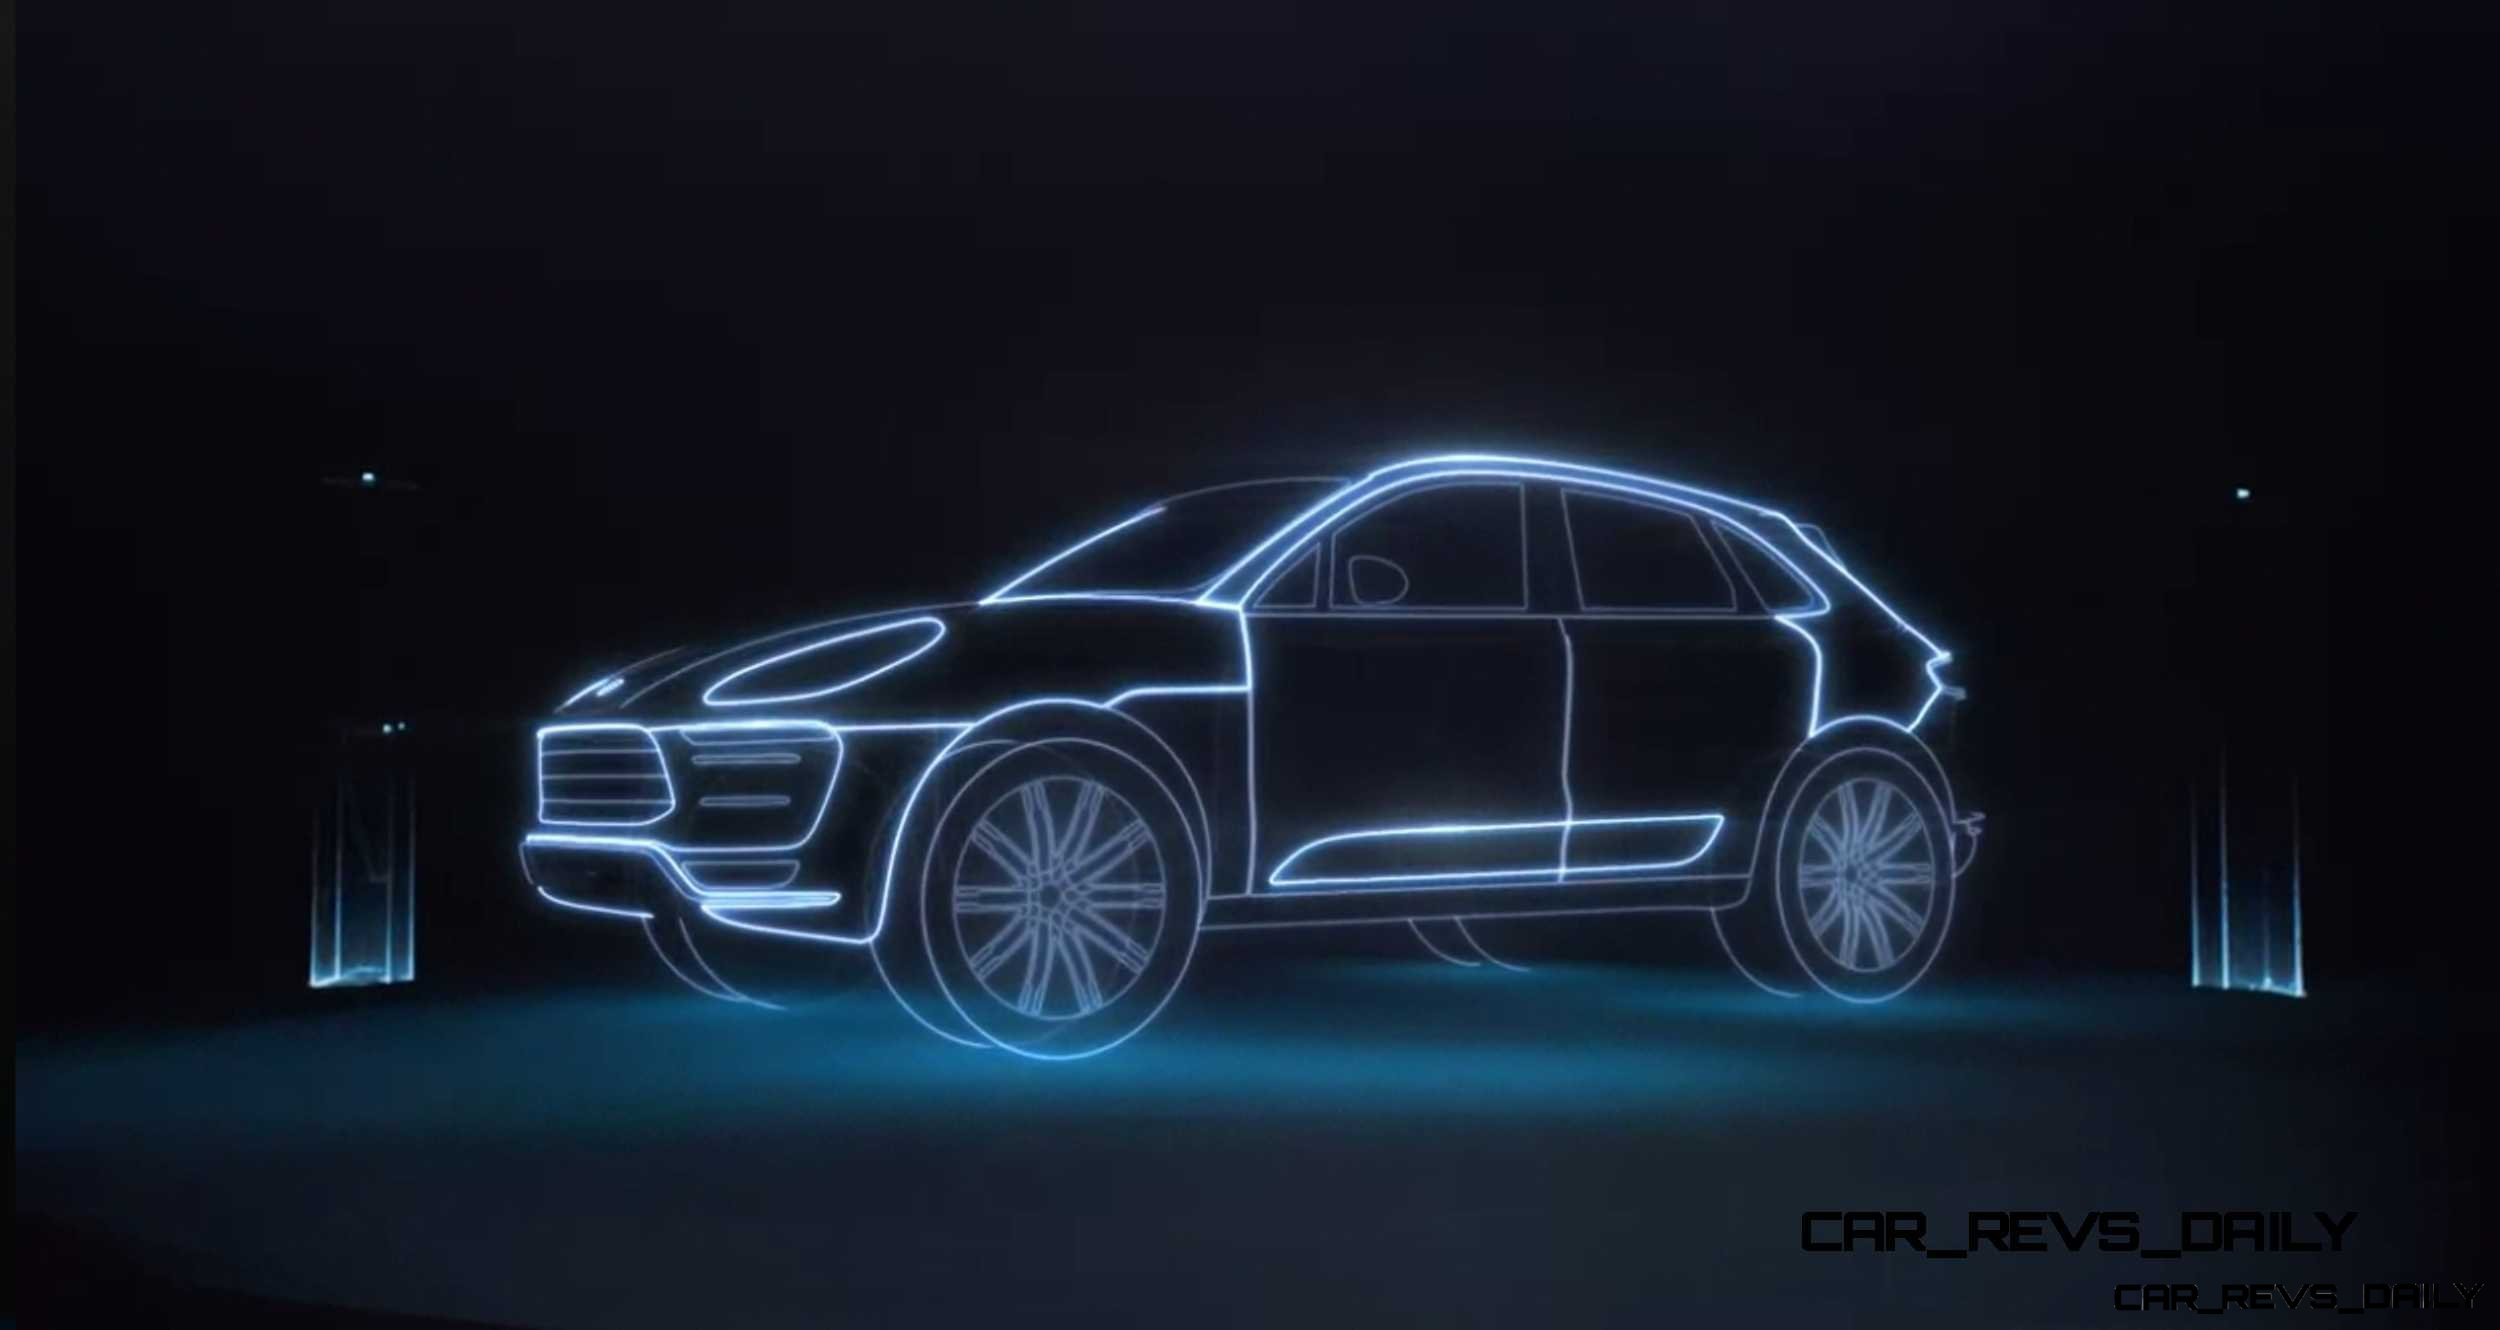 2015 Porsche Macan - Latest Images - CarRevsDaily.com 31